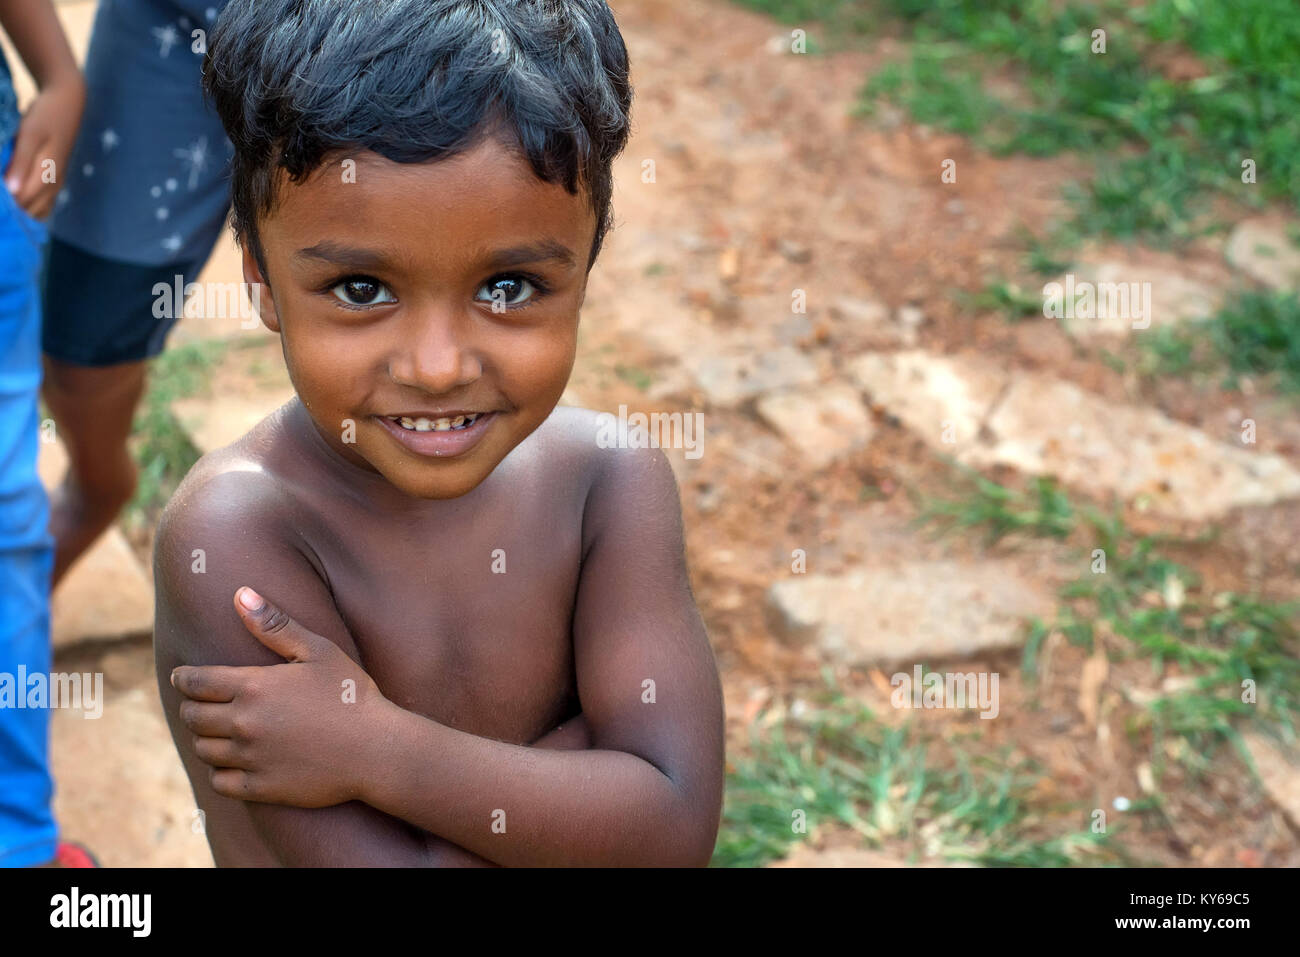 COLOMBO, SRI LANKA - CIRCA DECEMBER 2016: Portrait of unidentified small smiling boy - Stock Image